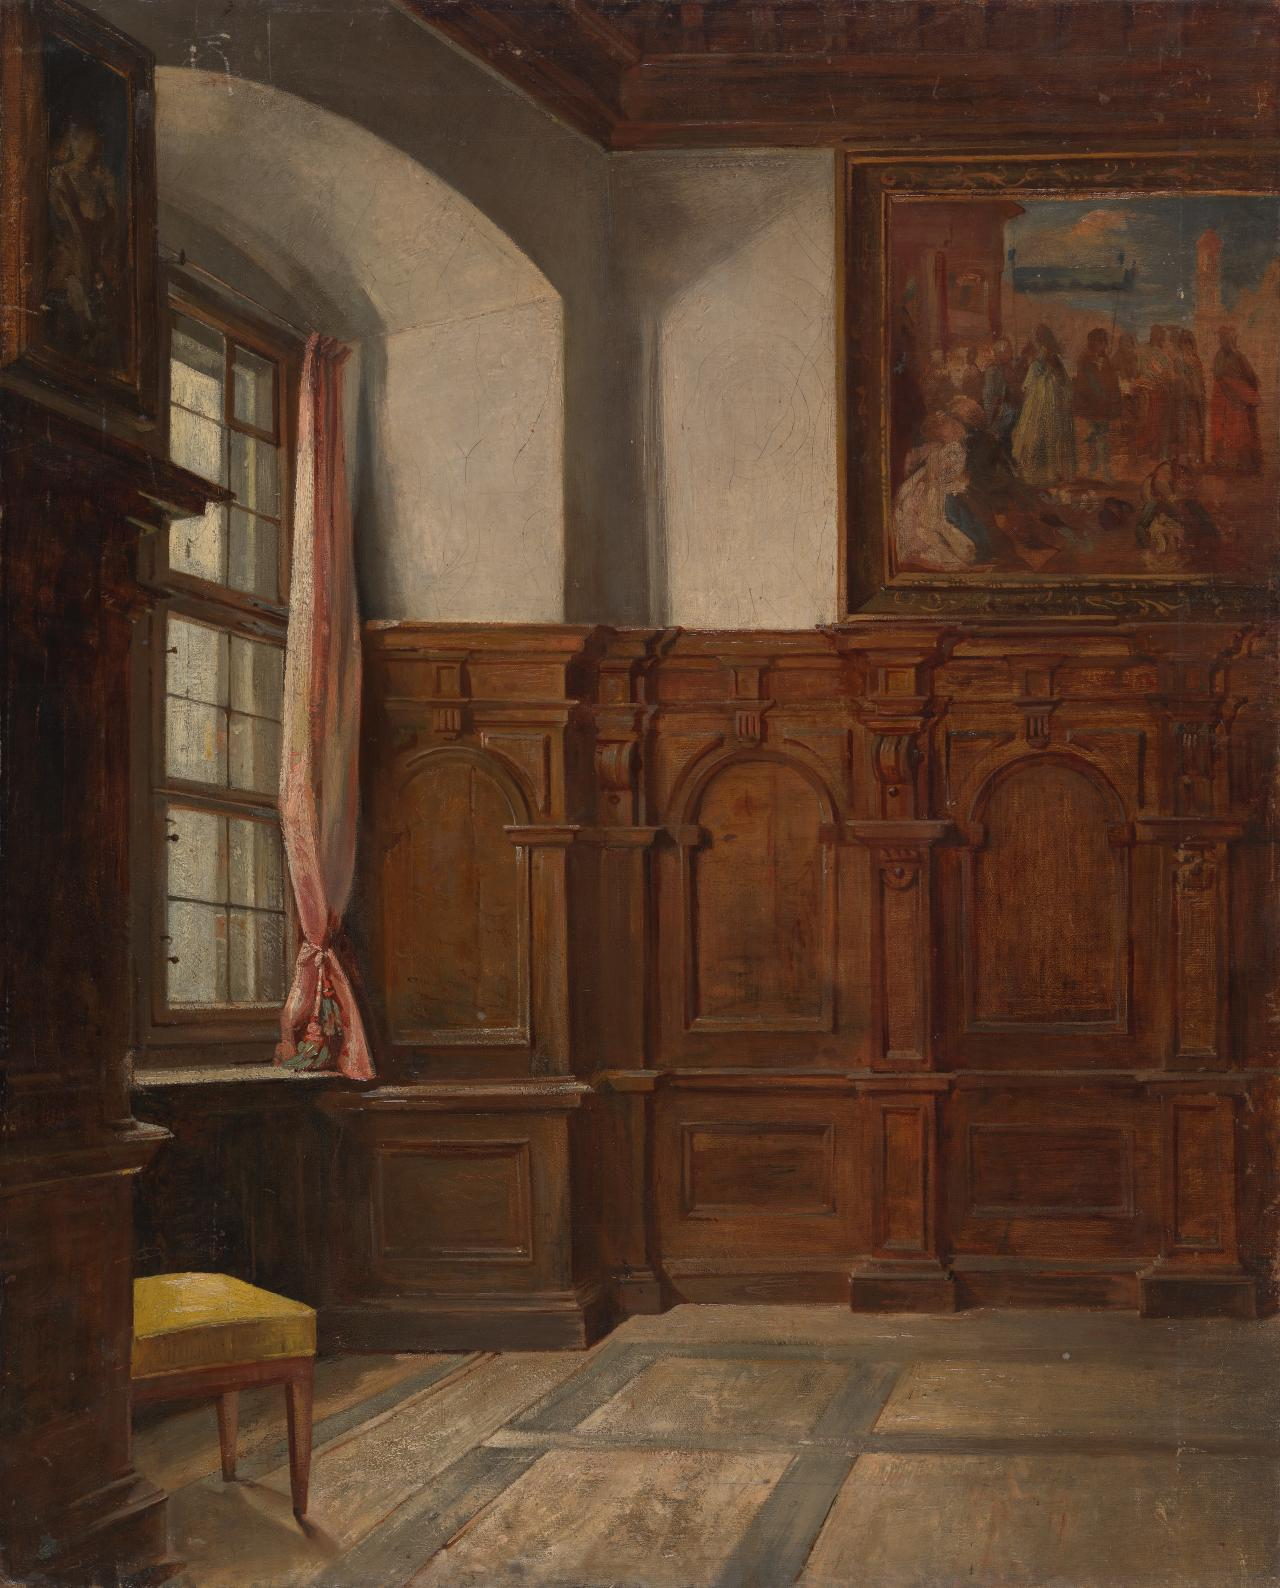 (Study of the interior of a convent room)